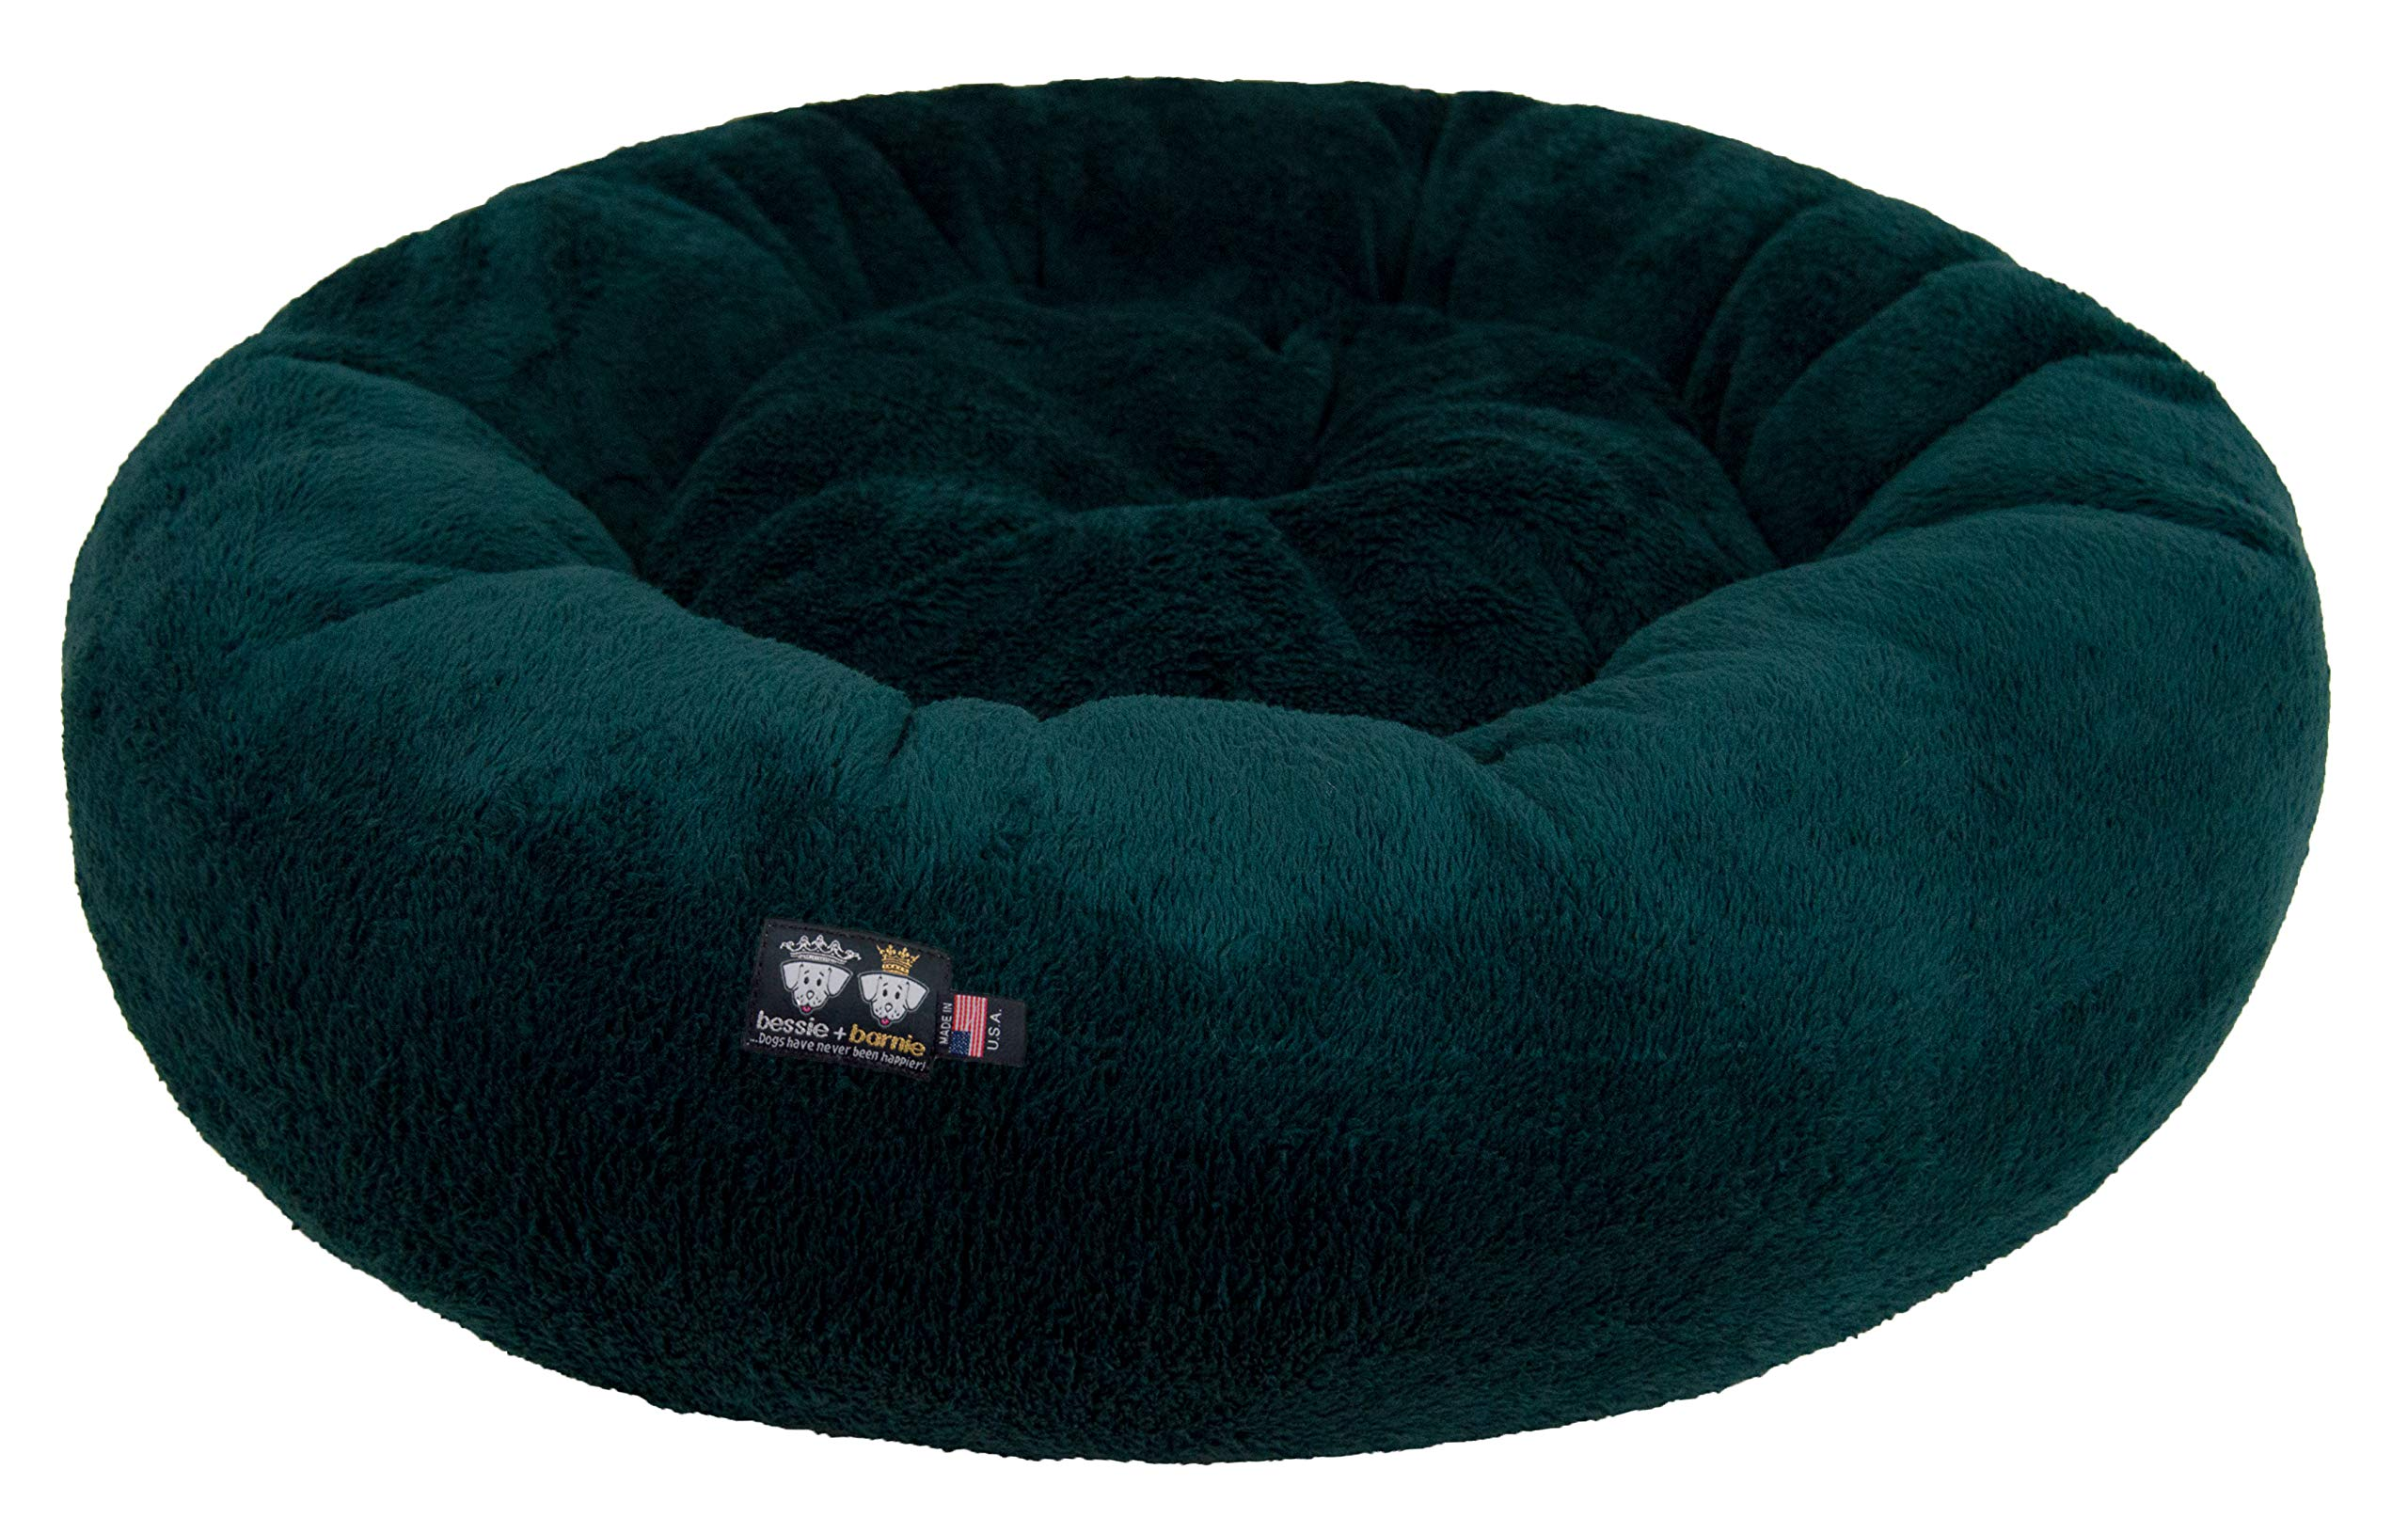 BESSIE AND BARNIE Ultra Plush Deluxe Comfort Pet Dog & Cat Hunter Green Snuggle Bed (Multiple Sizes) - Machine Washable, Made in The USA, Reversible, Durable Soft Fabrics, S - 23'' x 23'' by BESSIE AND BARNIE